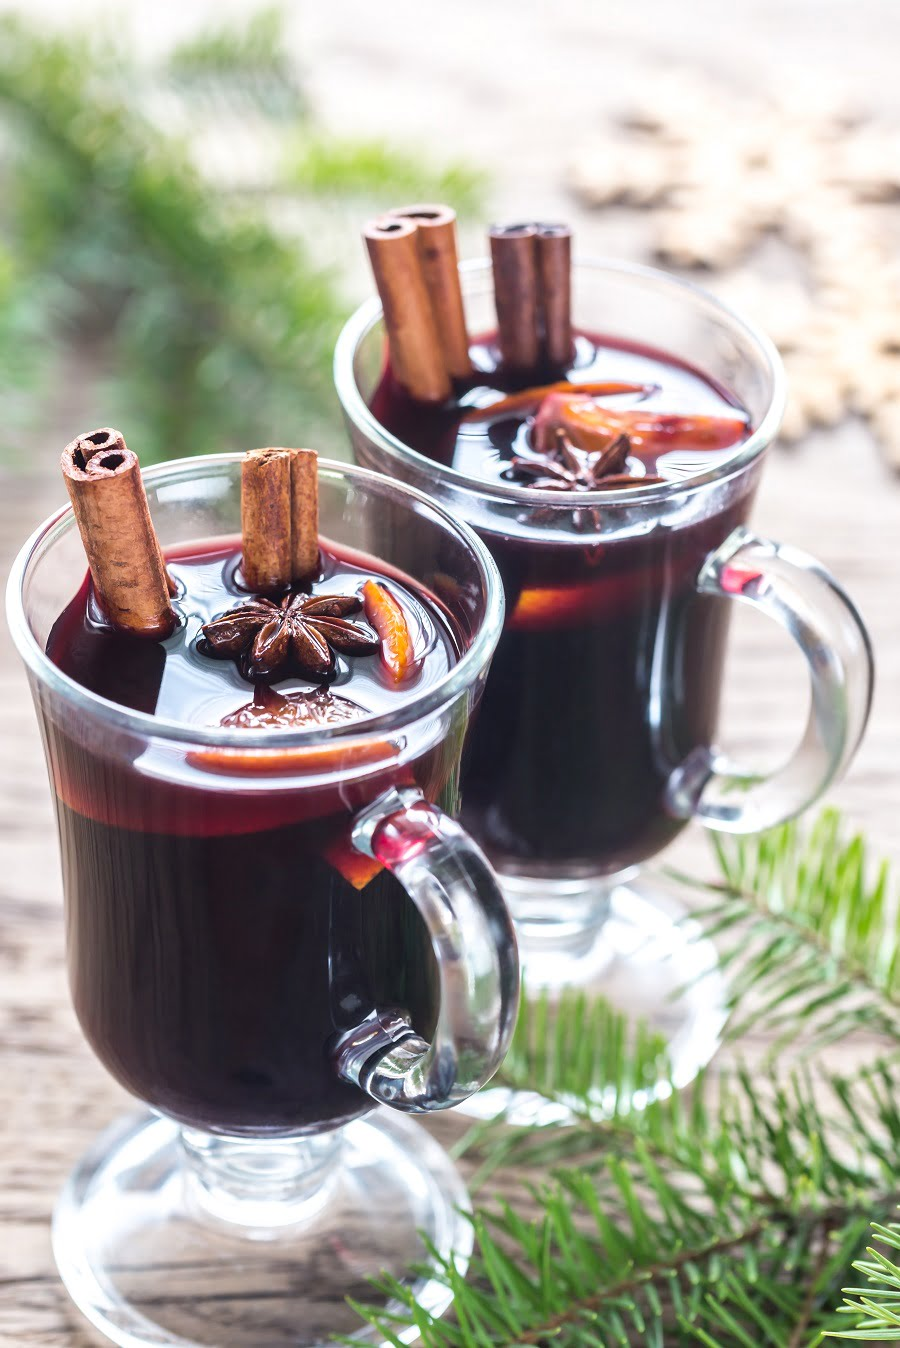 How to make mulled wine and mulled cider for the holidays